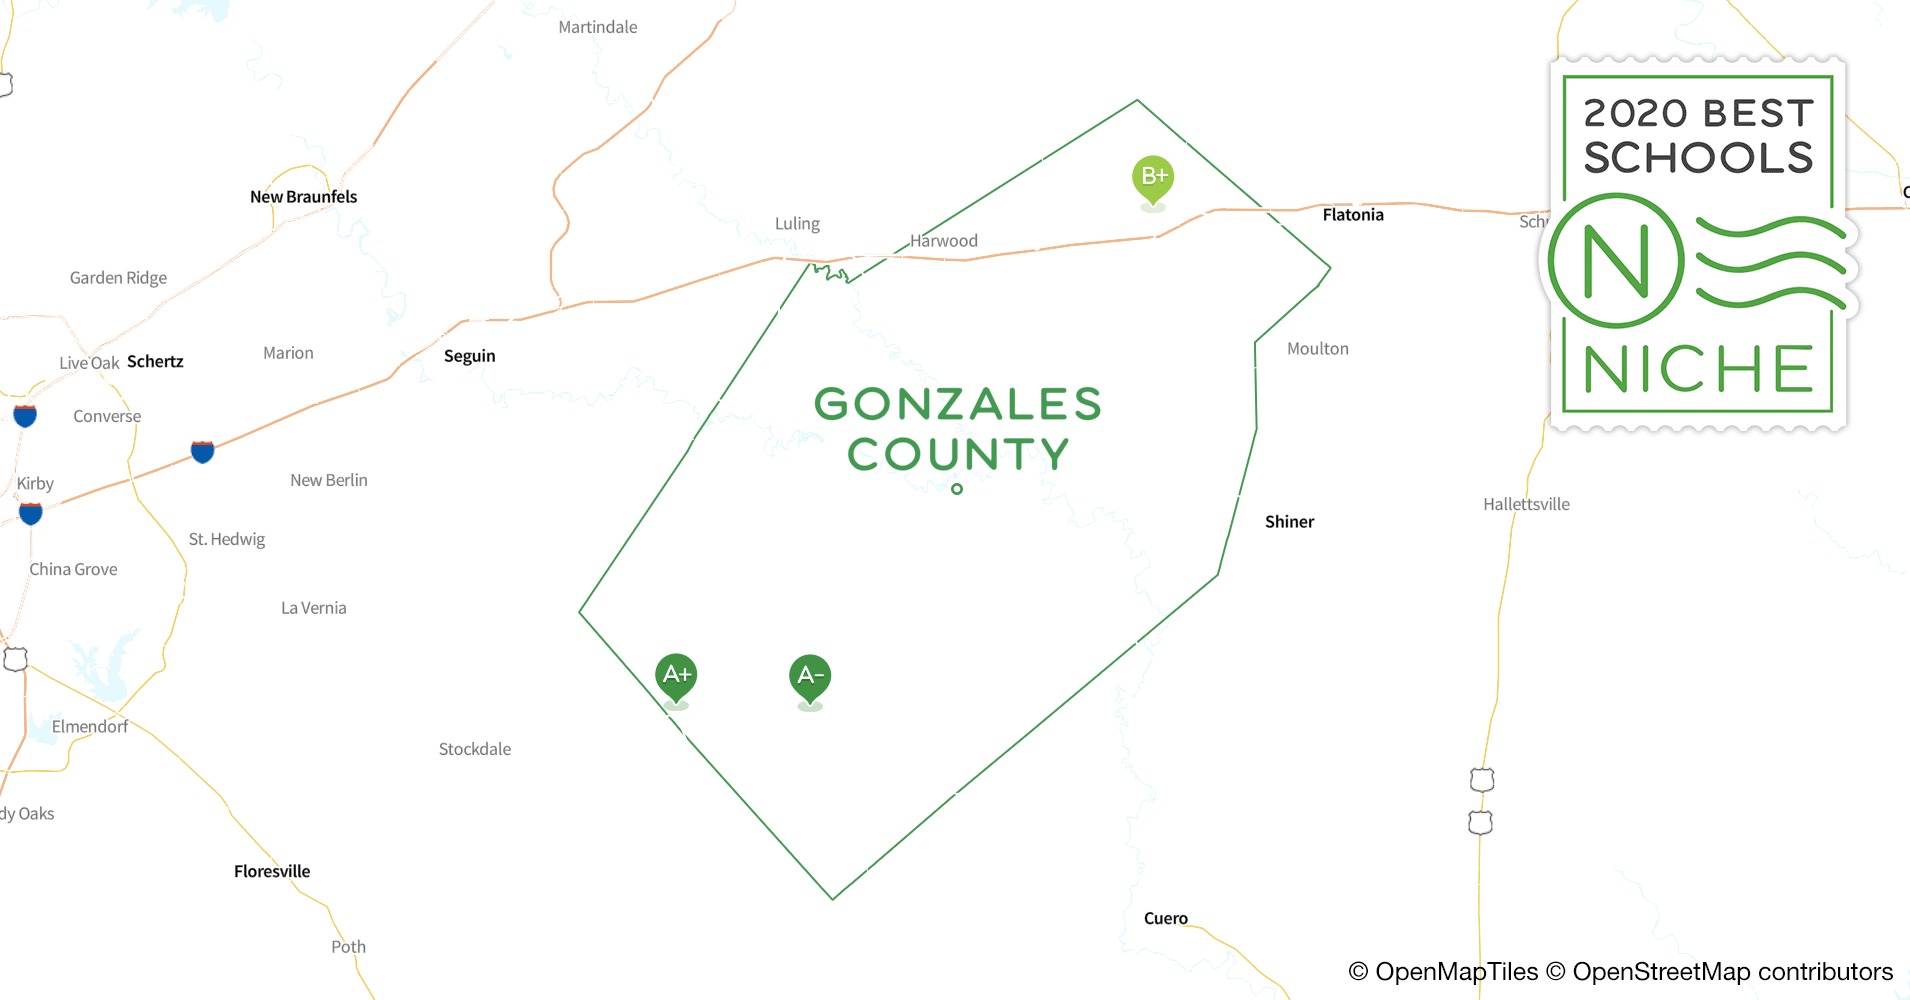 Districts in Gonzales County, TX - Niche on rhome texas county map, brown county, caldwell county, marshall county texas map, colorado county, madisonville county texas map, collingsworth county texas map, dewitt county, brownwood county texas map, gonzales texas on a map, karnes county, colorado county texas map, gonzales texas aerial, lavaca county, zavala county, fayette county texas road map, harrison county texas map, fannin county, harris county, guadalupe county texas map, bryan county texas map, gonzales texas 2014, benton county texas map, adams county texas map, beaumont county texas map, bell county, wilson county, mclennan county, lavaca county texas map, kingsville county texas map, comal county, guadalupe county, jackson county, burnet county, san antonio county texas map, bexar county, pasadena county texas map,